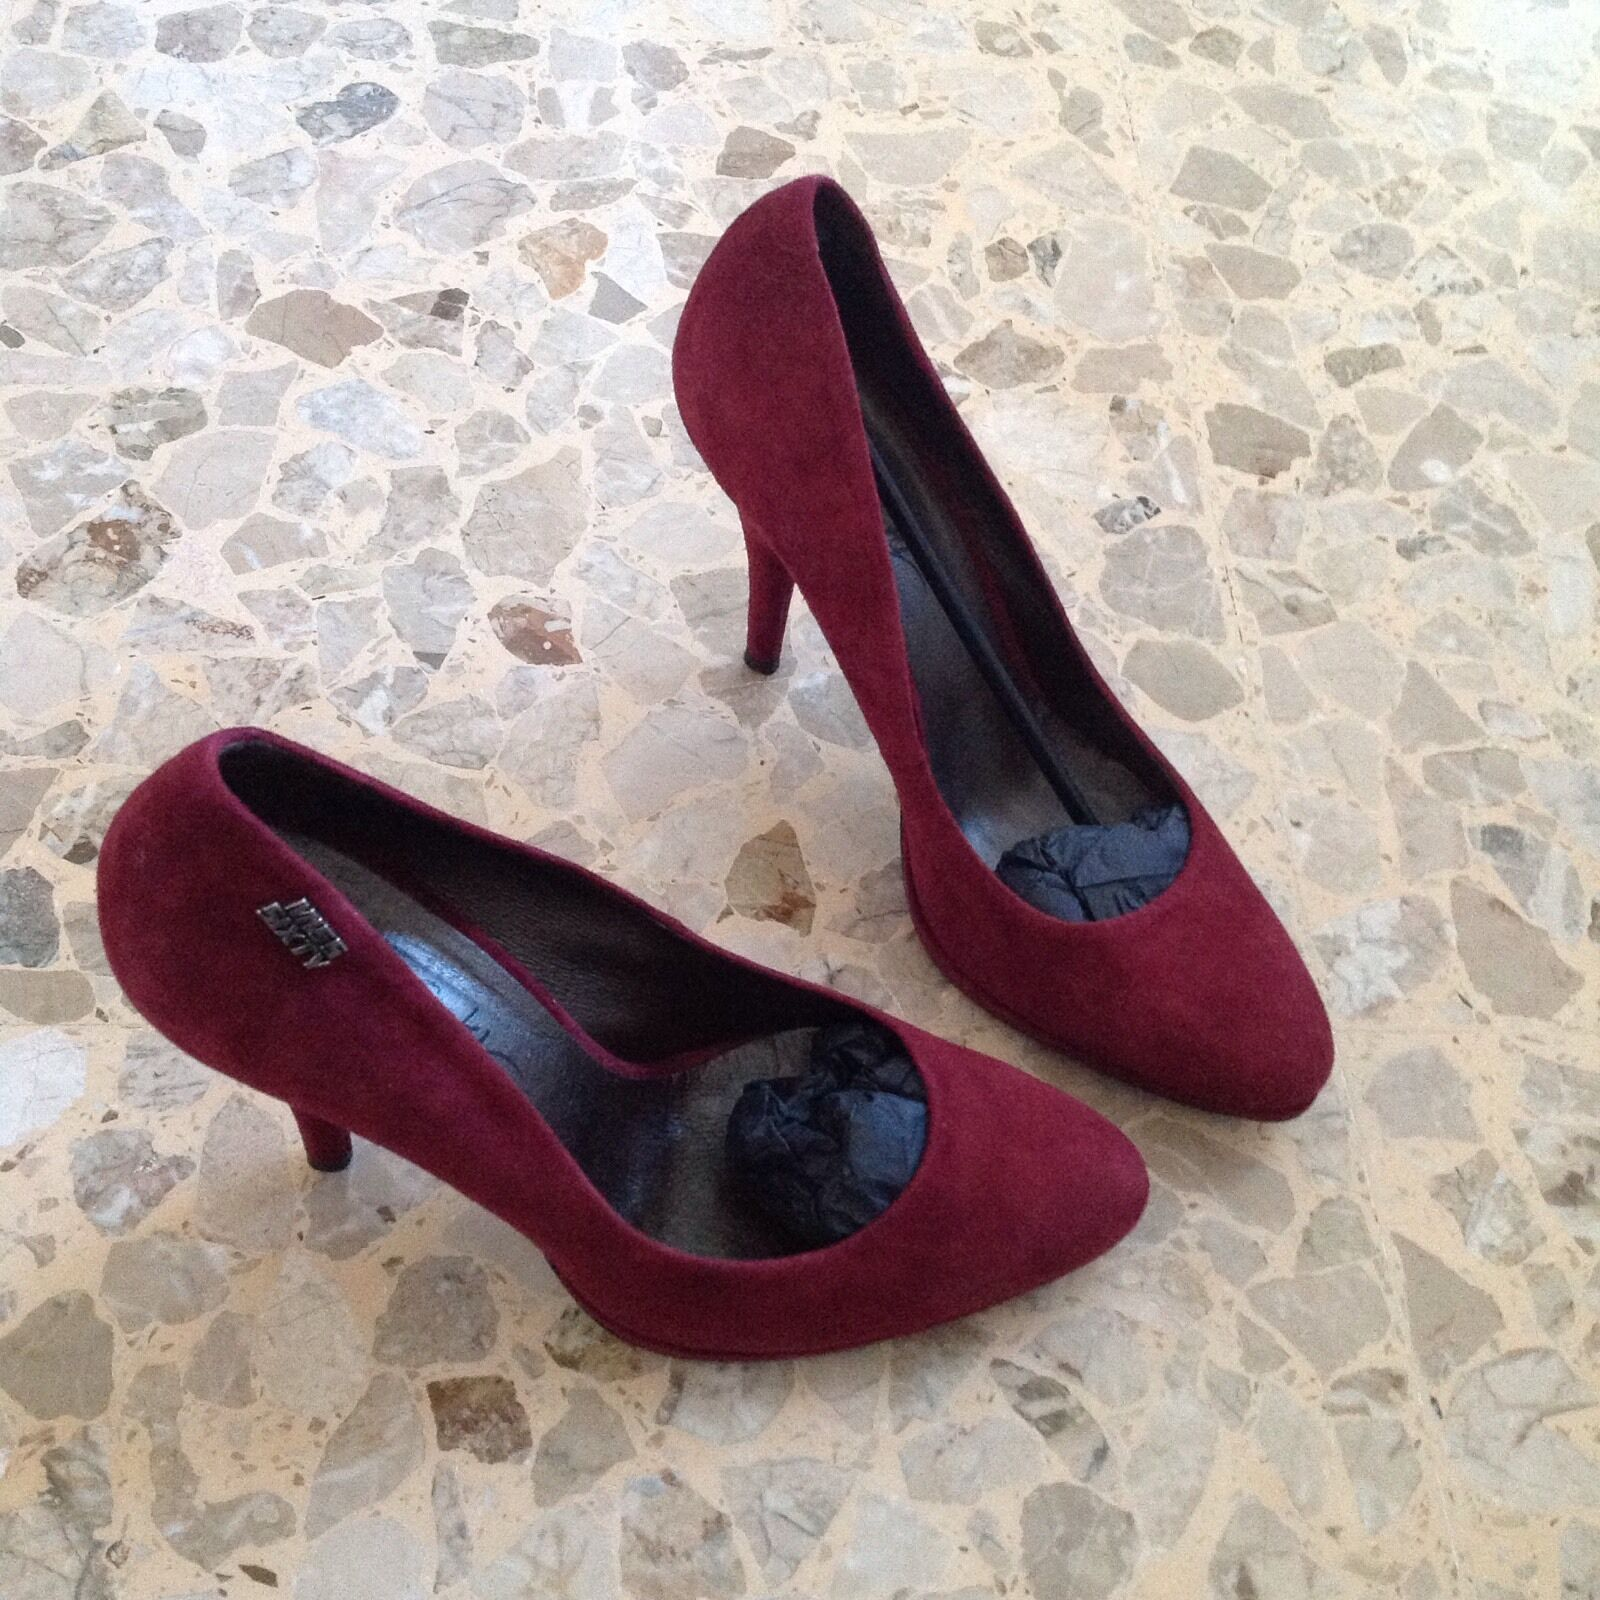 Schuhe schuhe pumps schuhe chaussures Miss Sixty 4040,5 bordeaux cuoio COME NUOVE